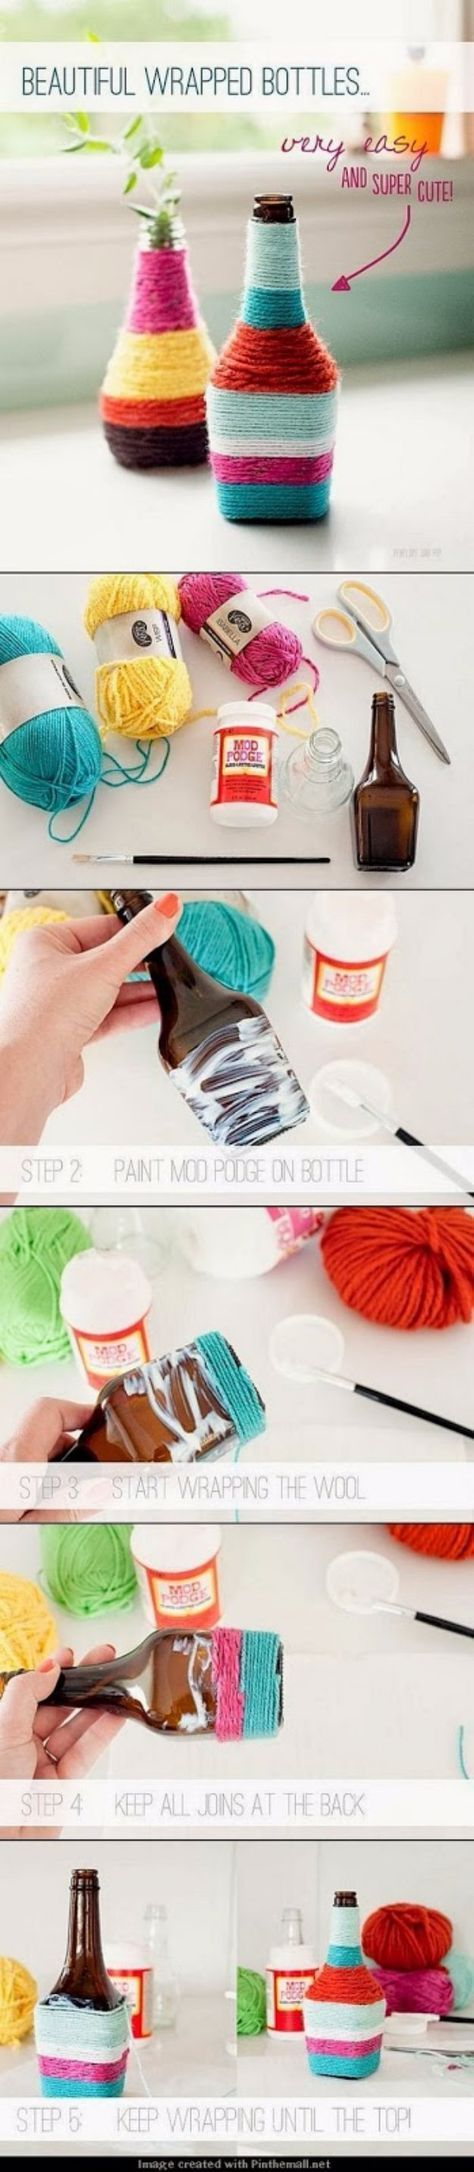 25 best ideas about make and sell on pinterest crafts for How do i sell my crafts online